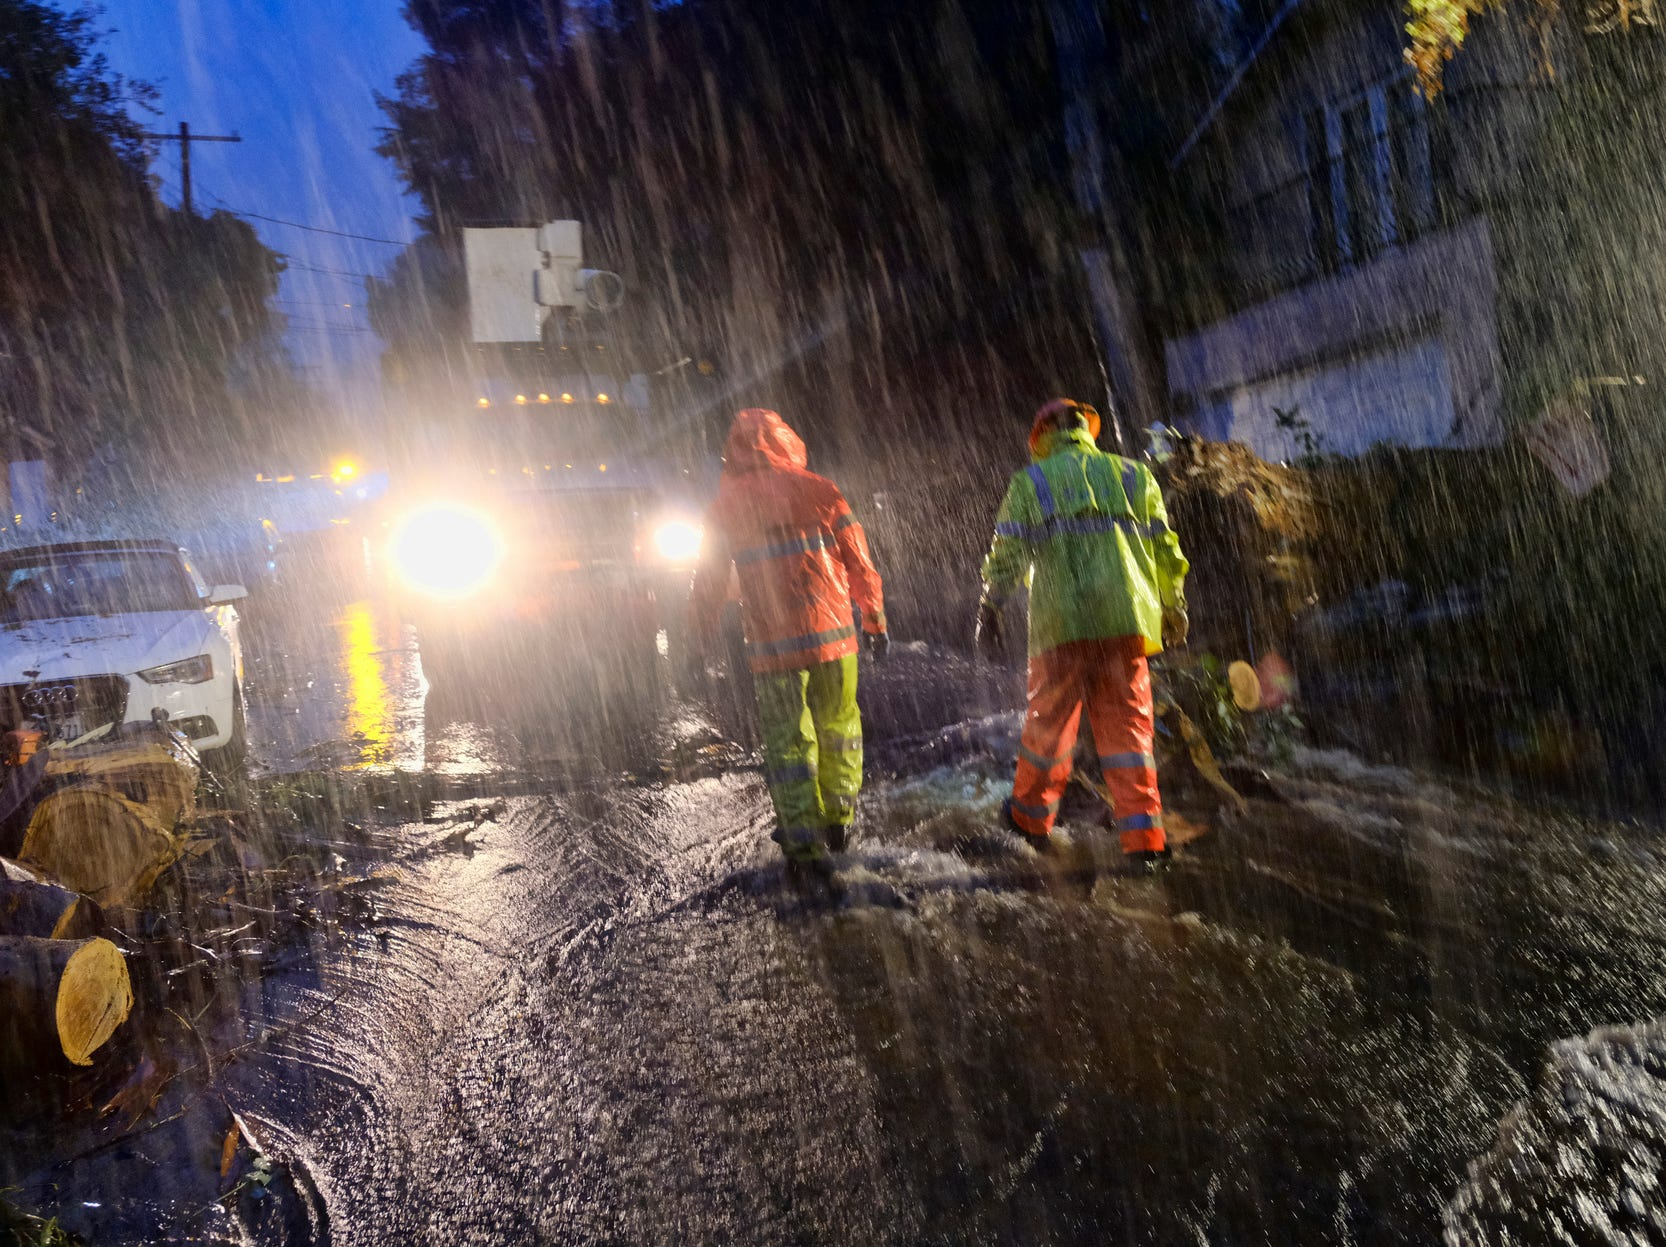 Department of Water and Power employees work in the pouring rain to clear a fallen tree from a road in the Hollywood hills in Los Angeles, Thursday, Jan. 17, 2019.